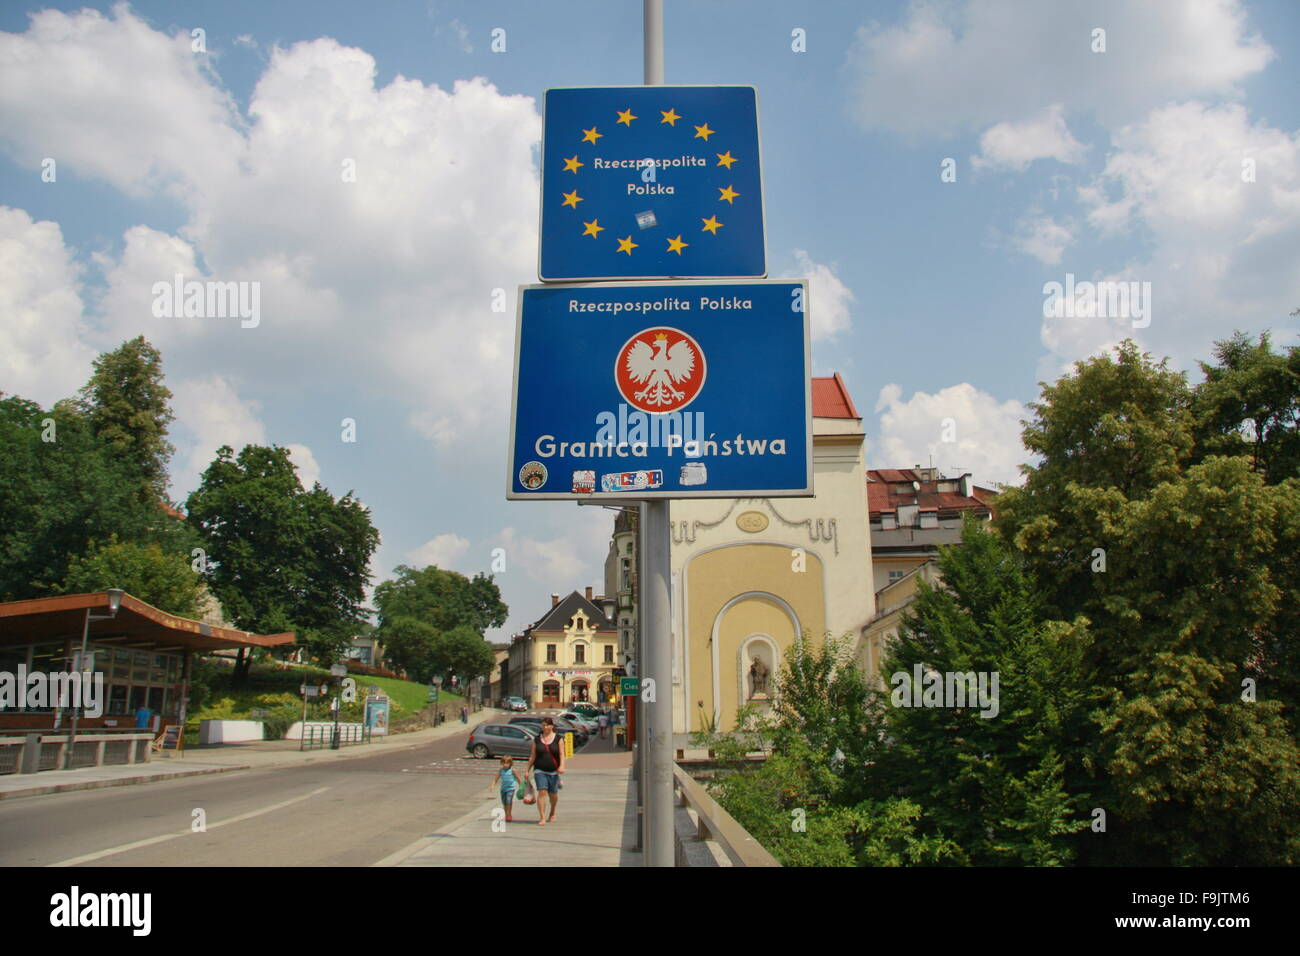 The state border, Poland - Stock Image